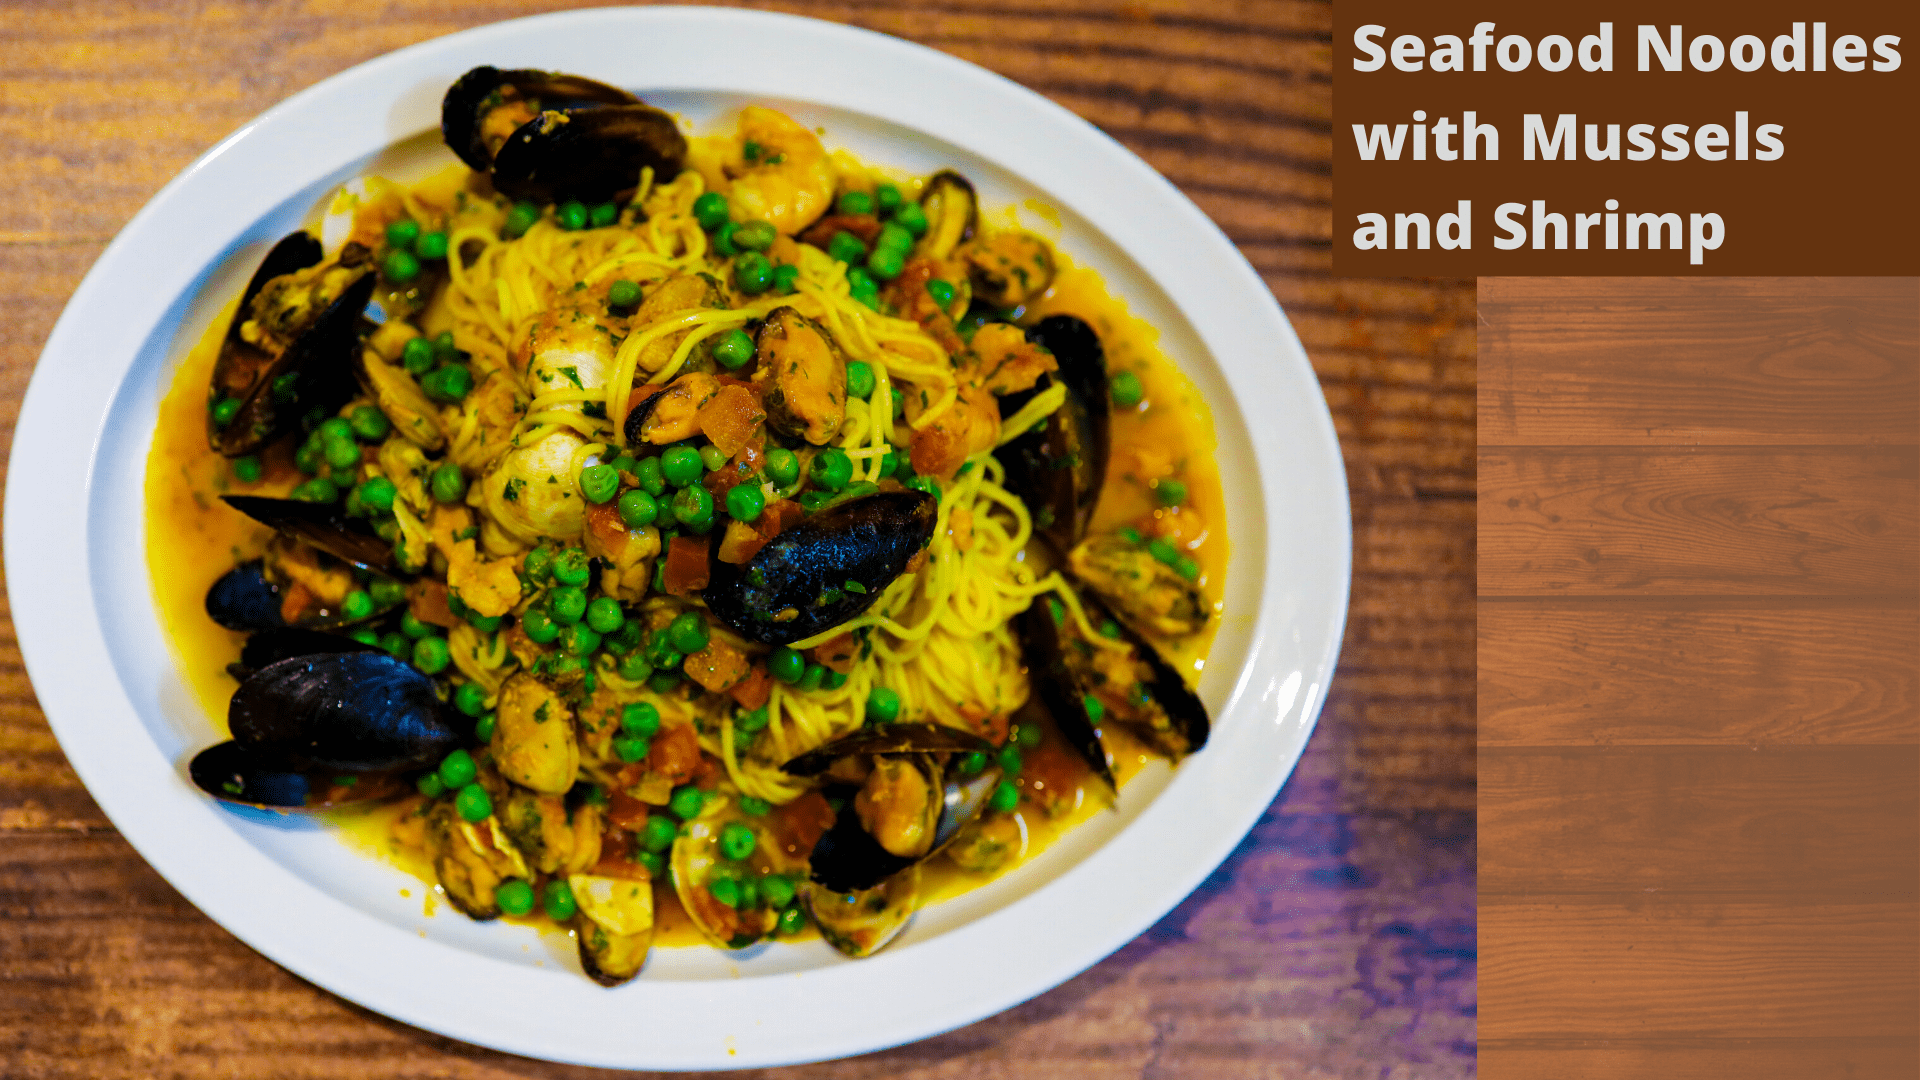 Seafood Noodles with Mussels and Shrimp